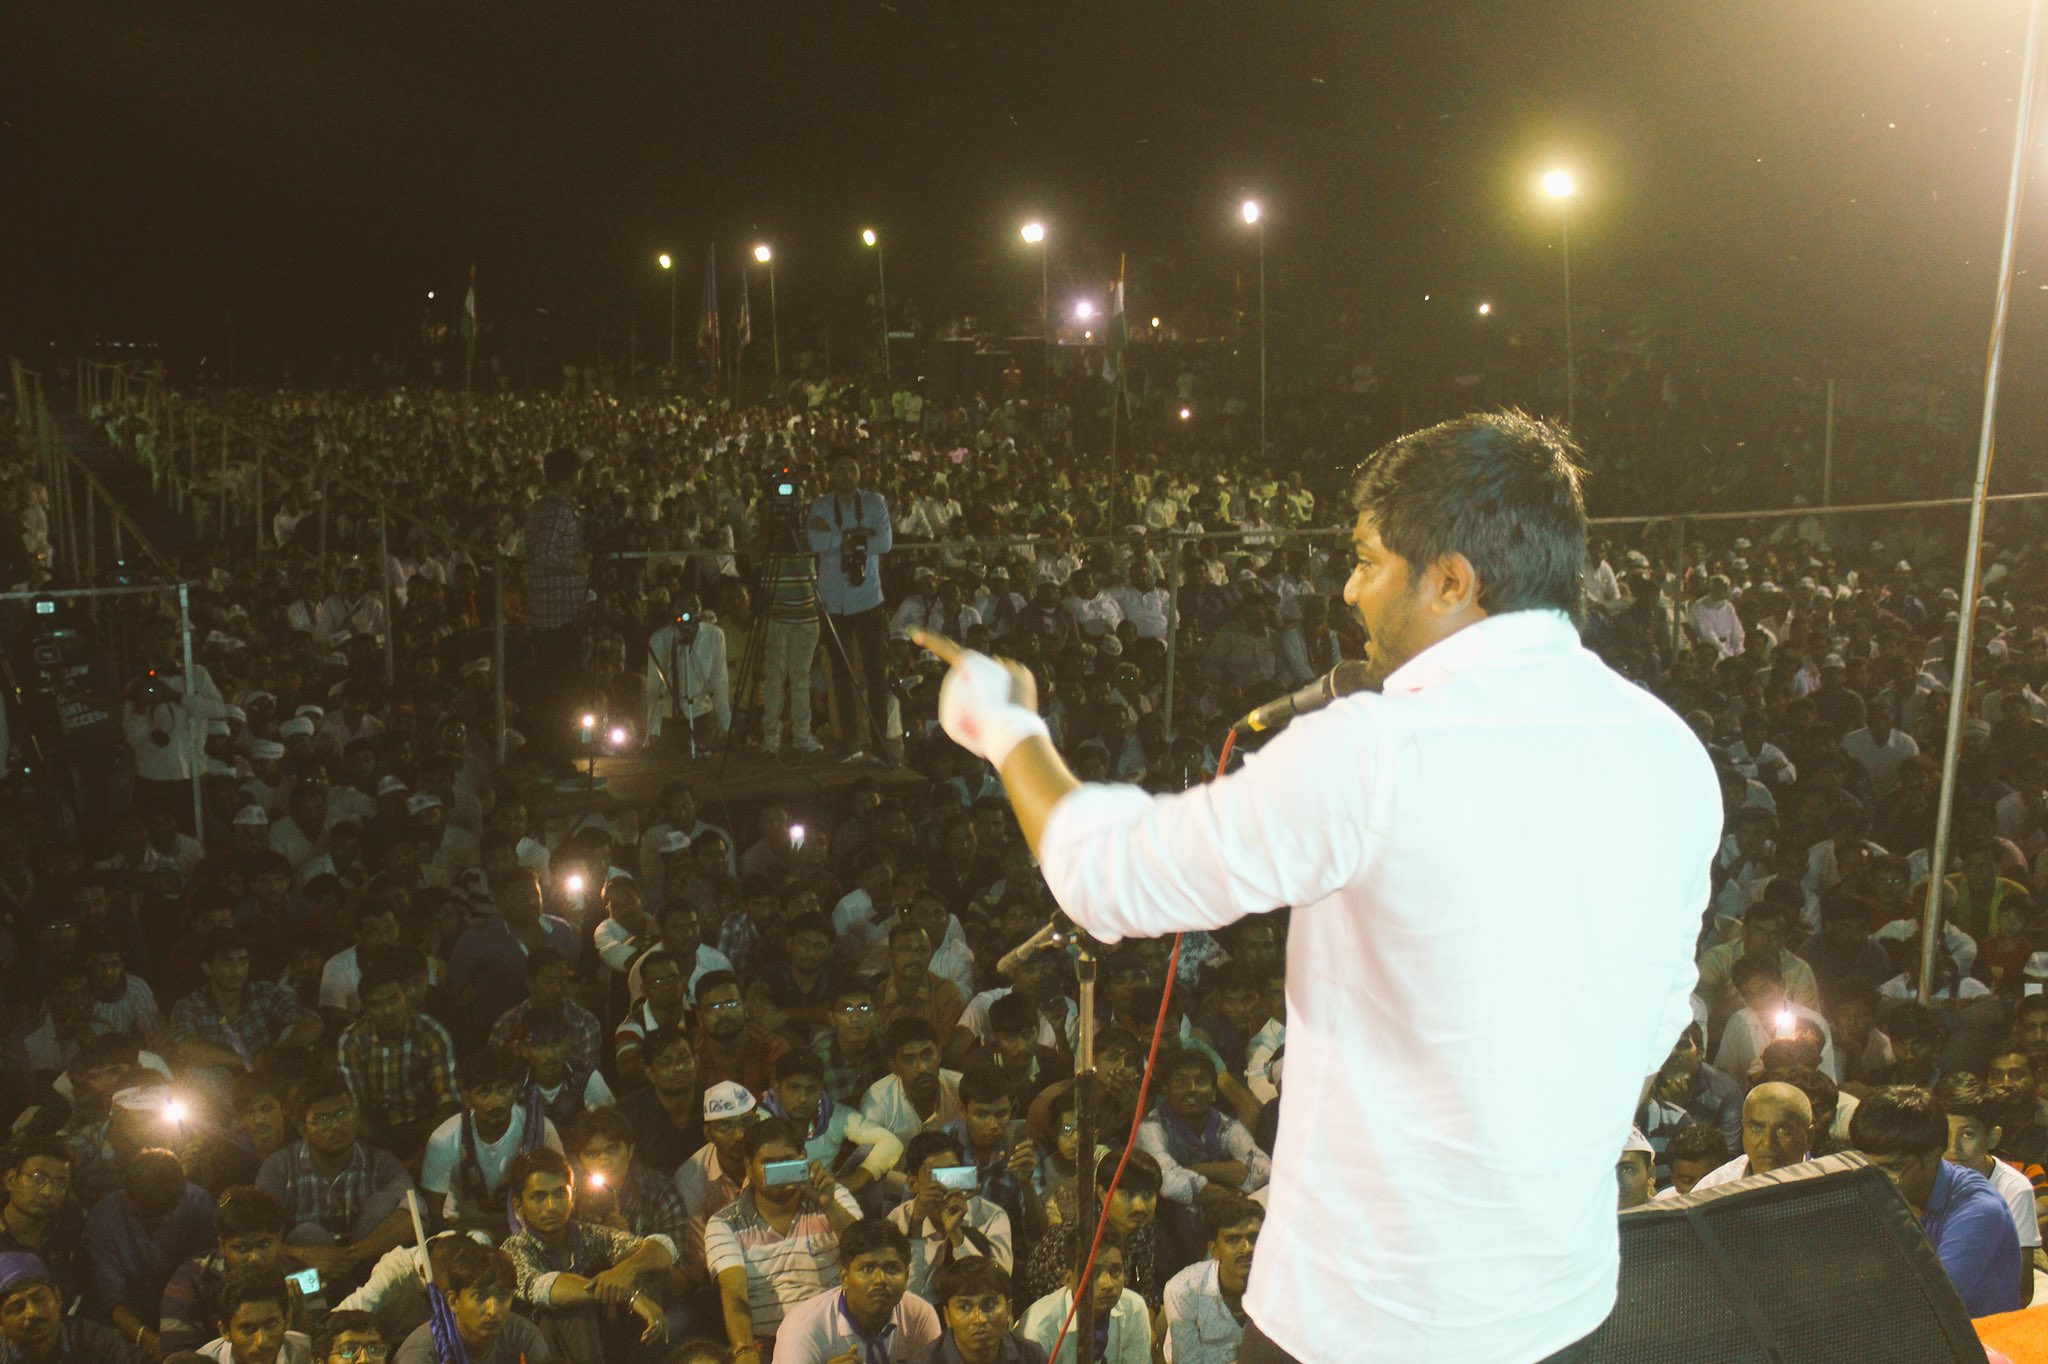 Hardik Patel's Sabha in Ahmedabad on October 24